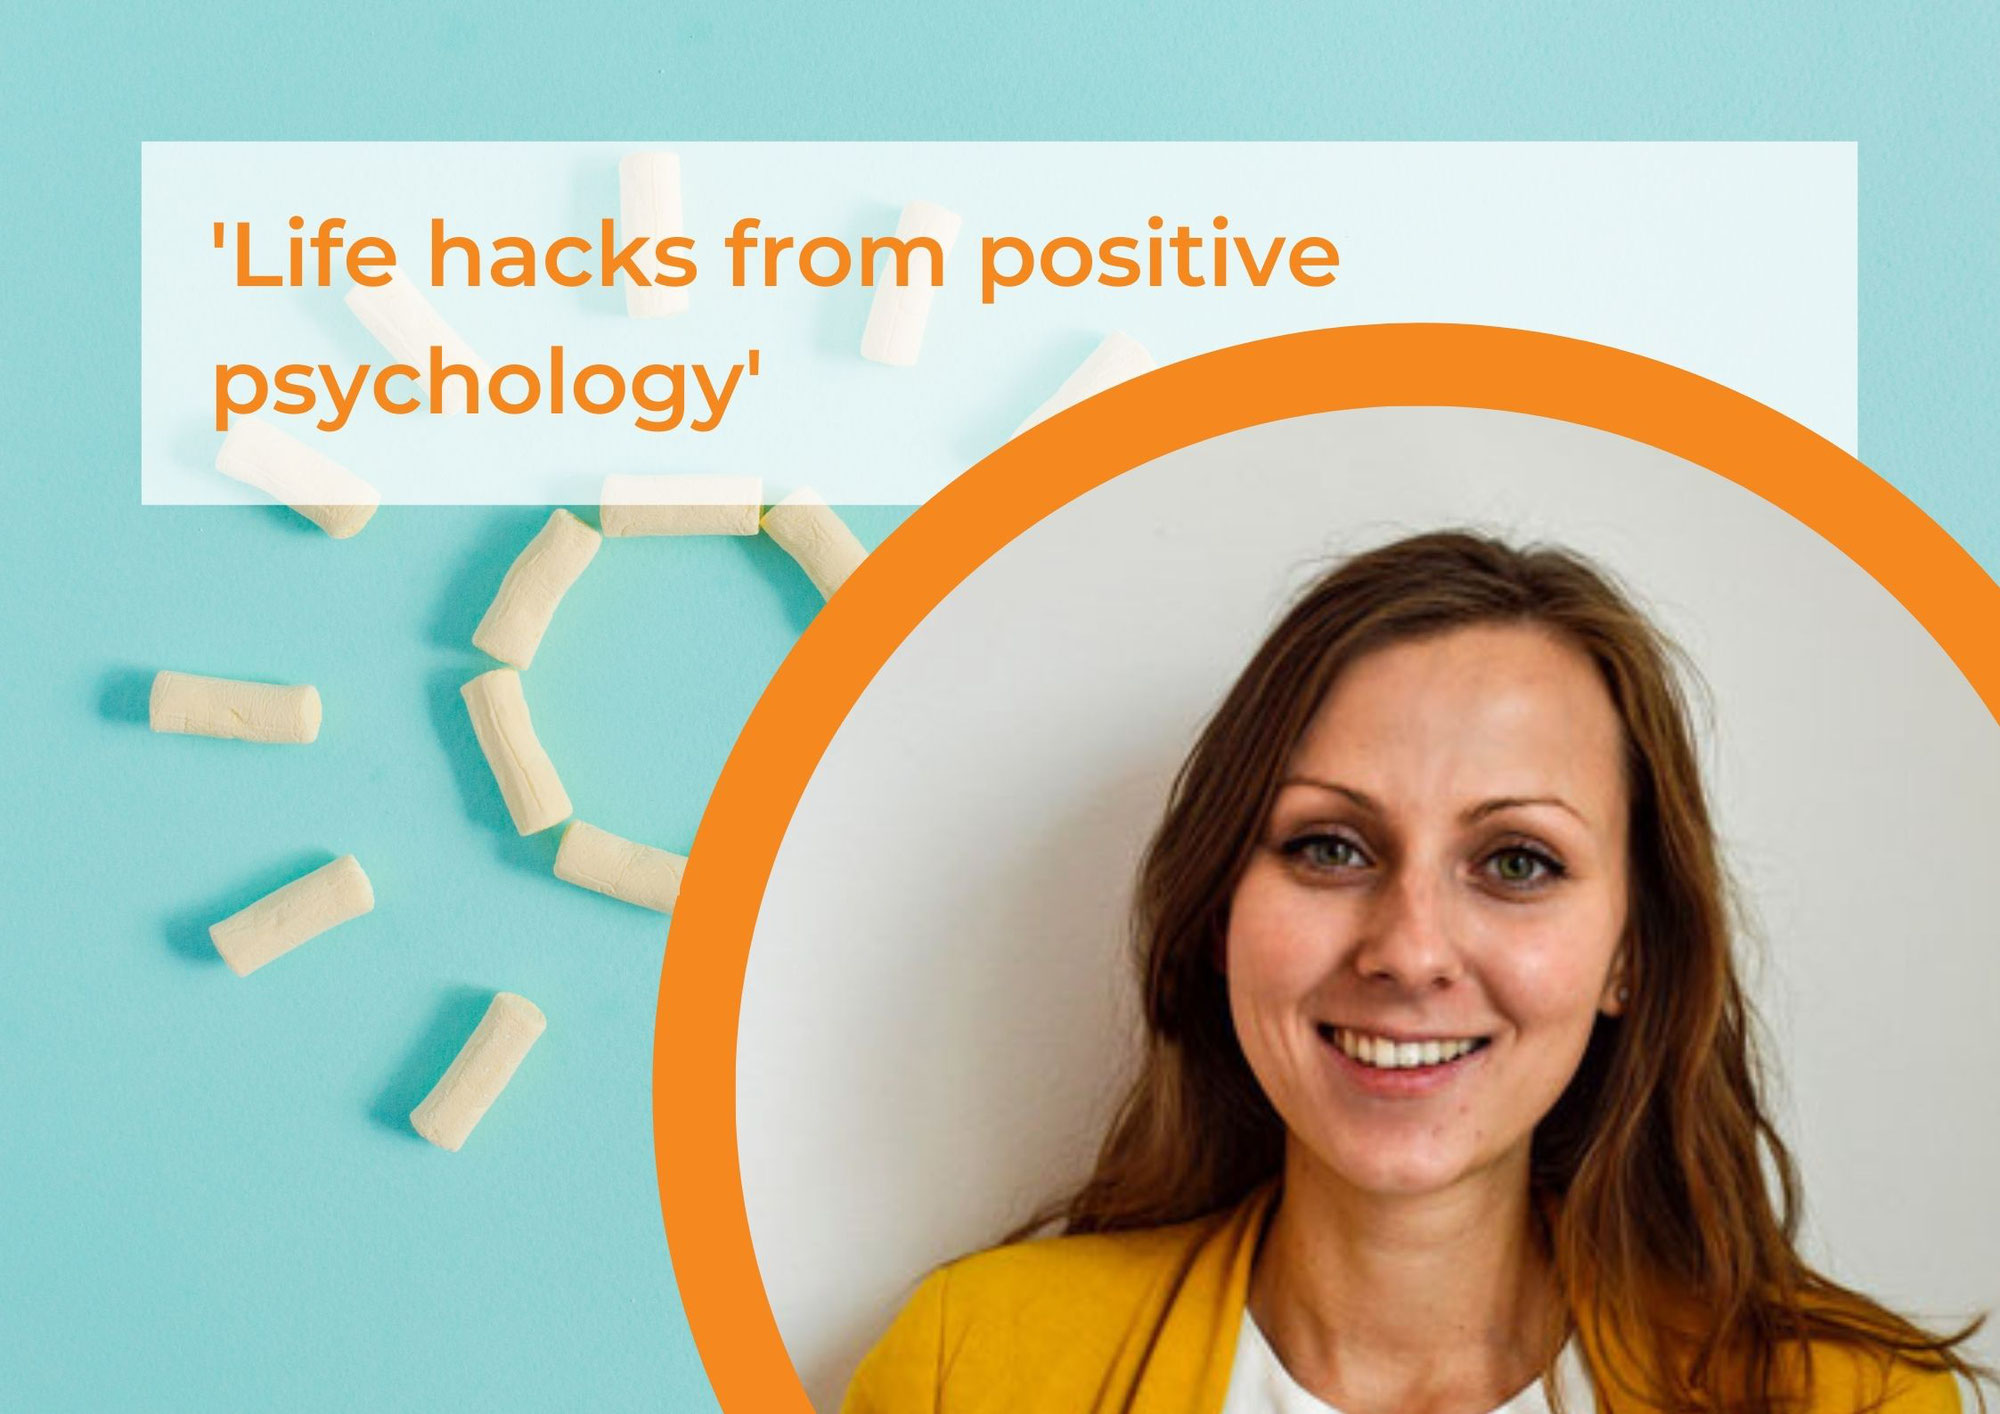 Life hacks from positive psychology